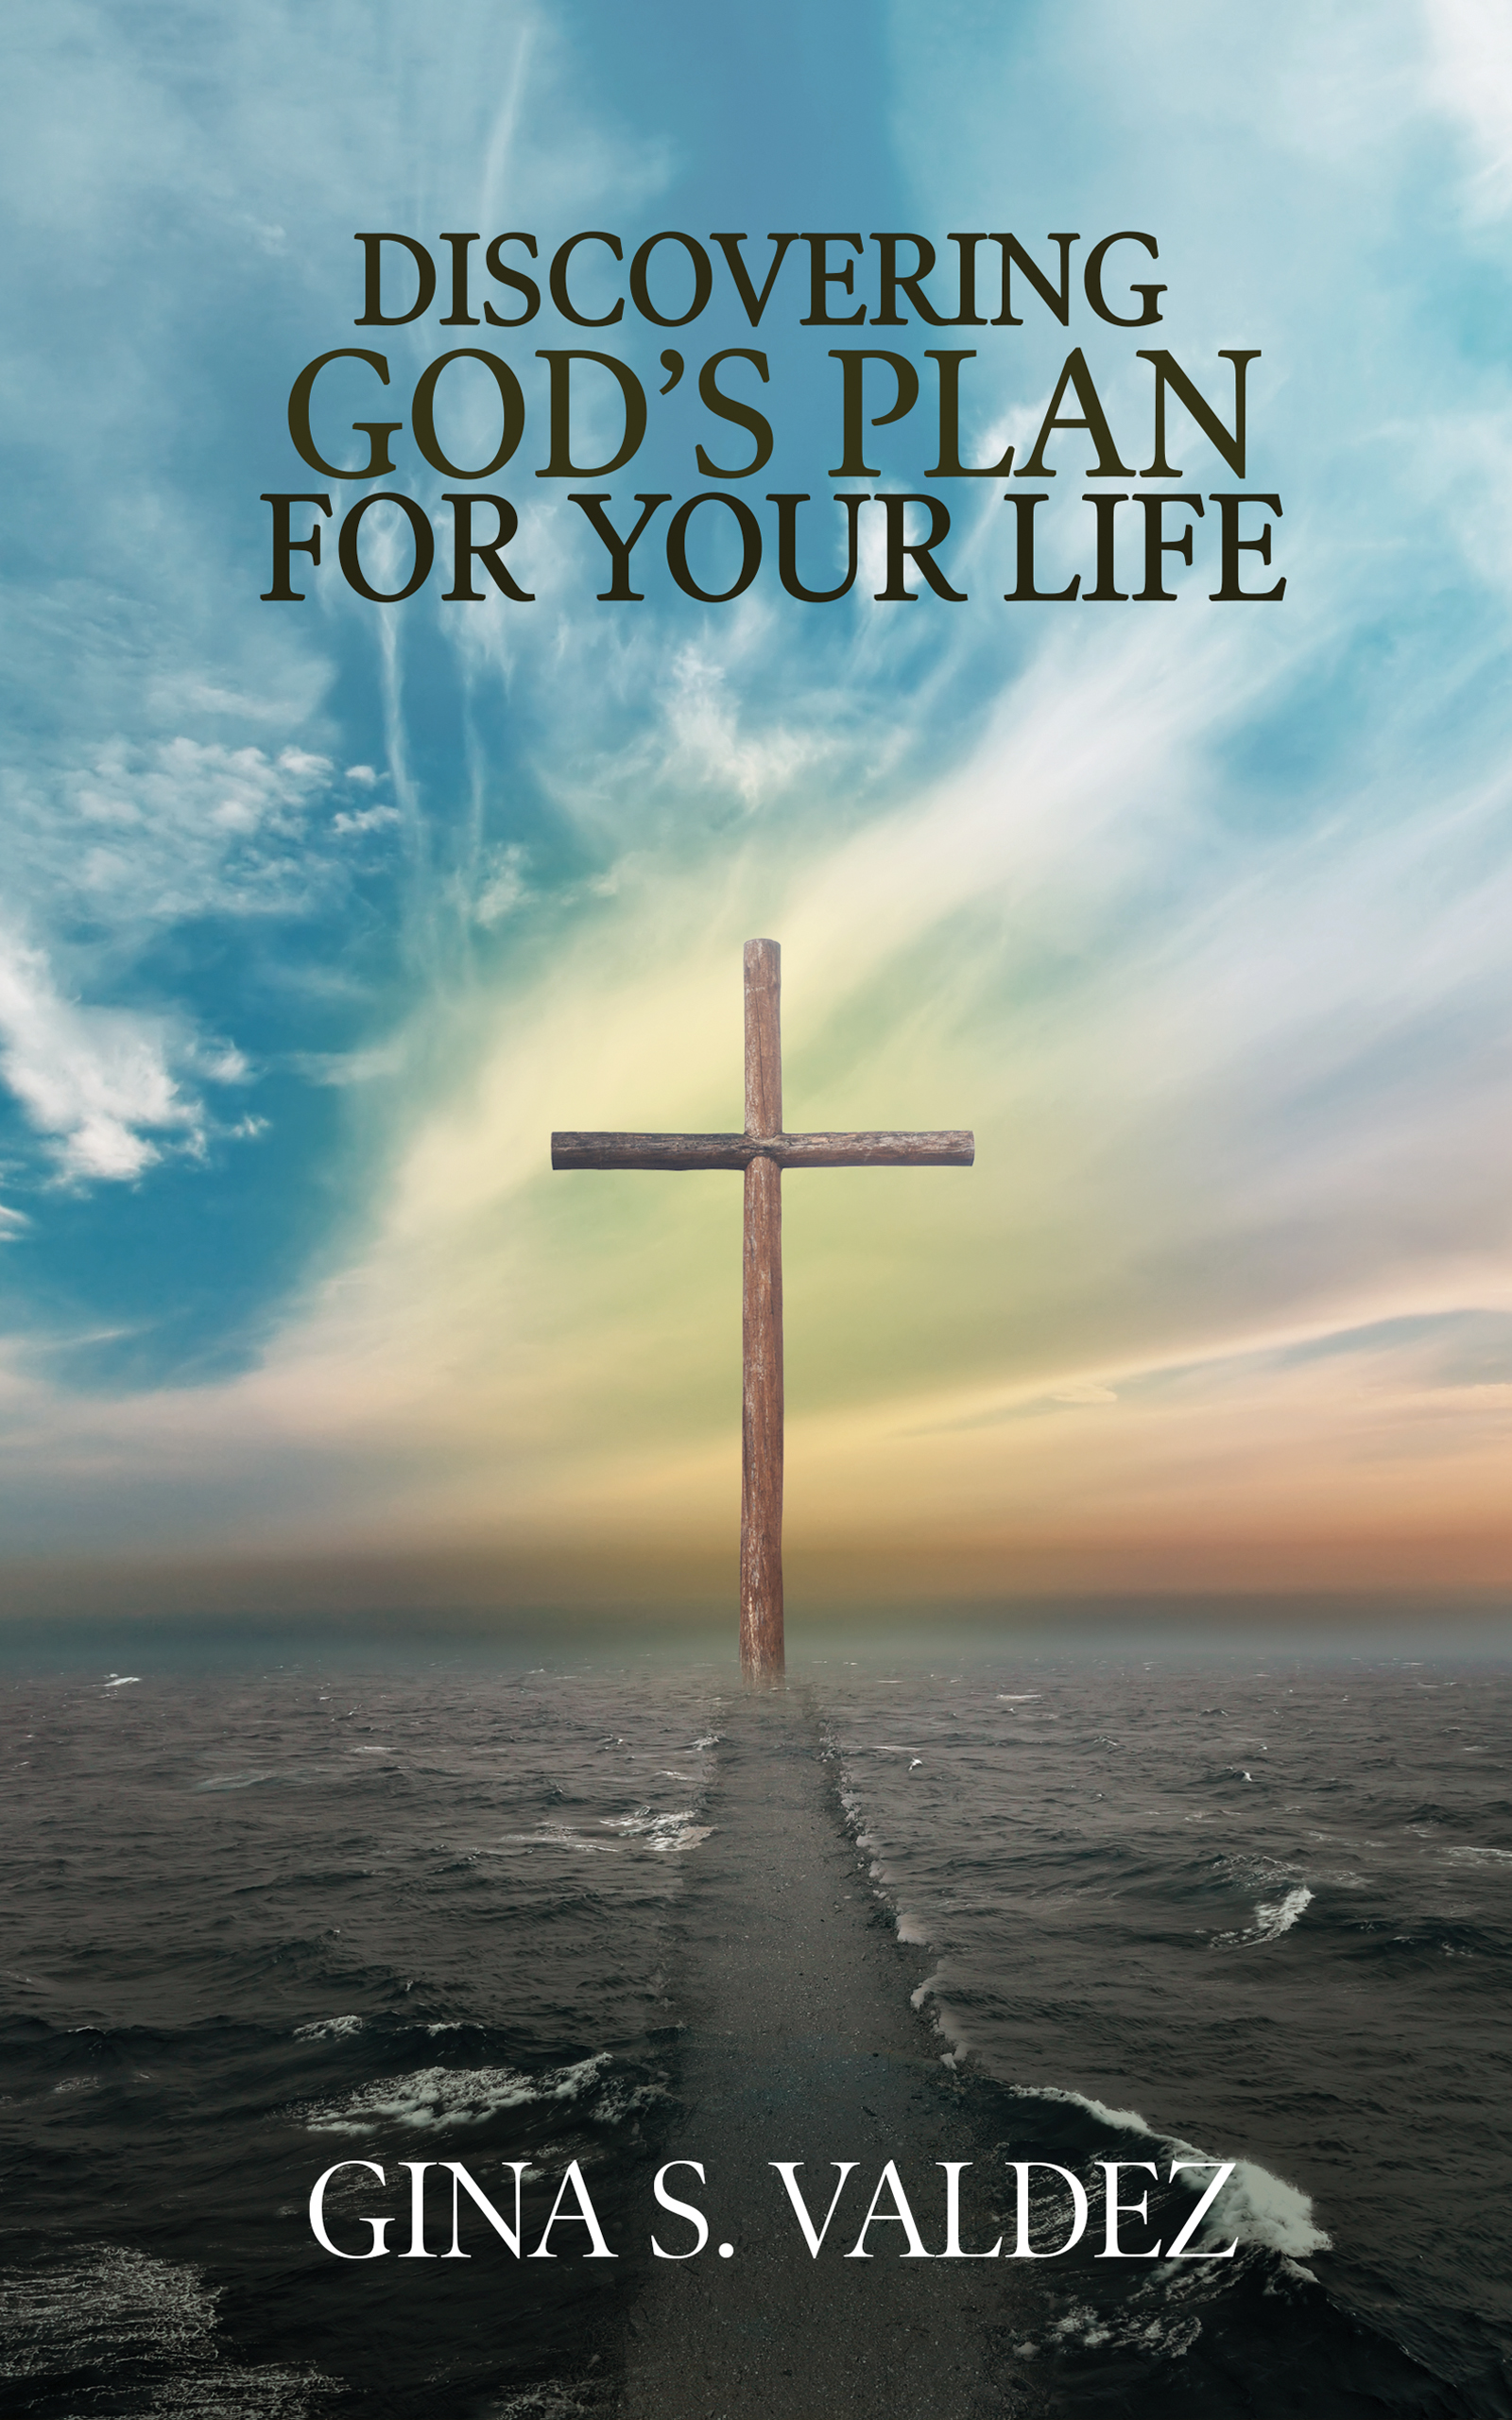 Discovering God's Plan For Your Life